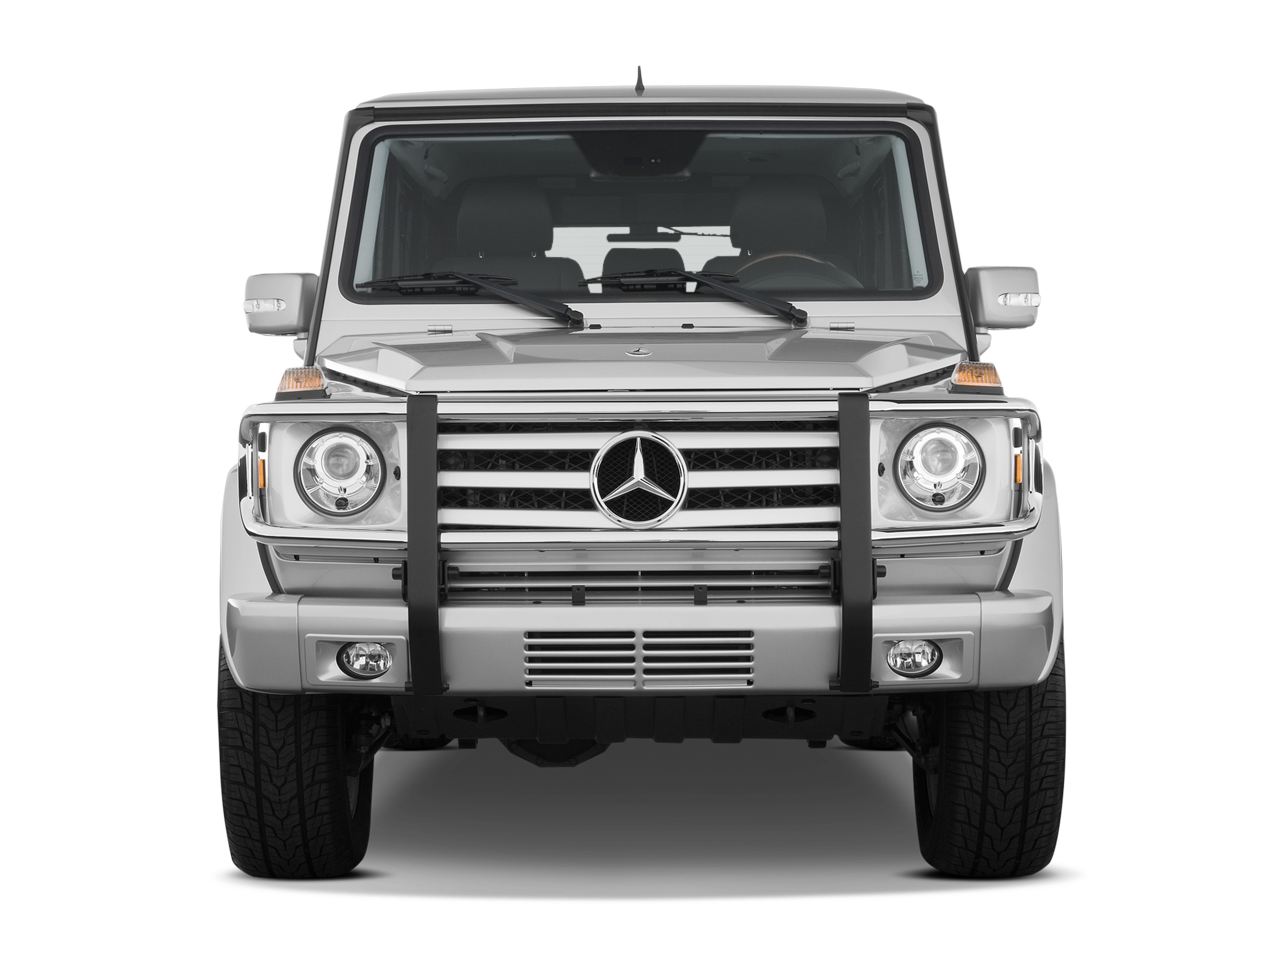 Mercedes-Benz G-klasse II (W463) Restyling 4 2015 - now SUV 5 door #3